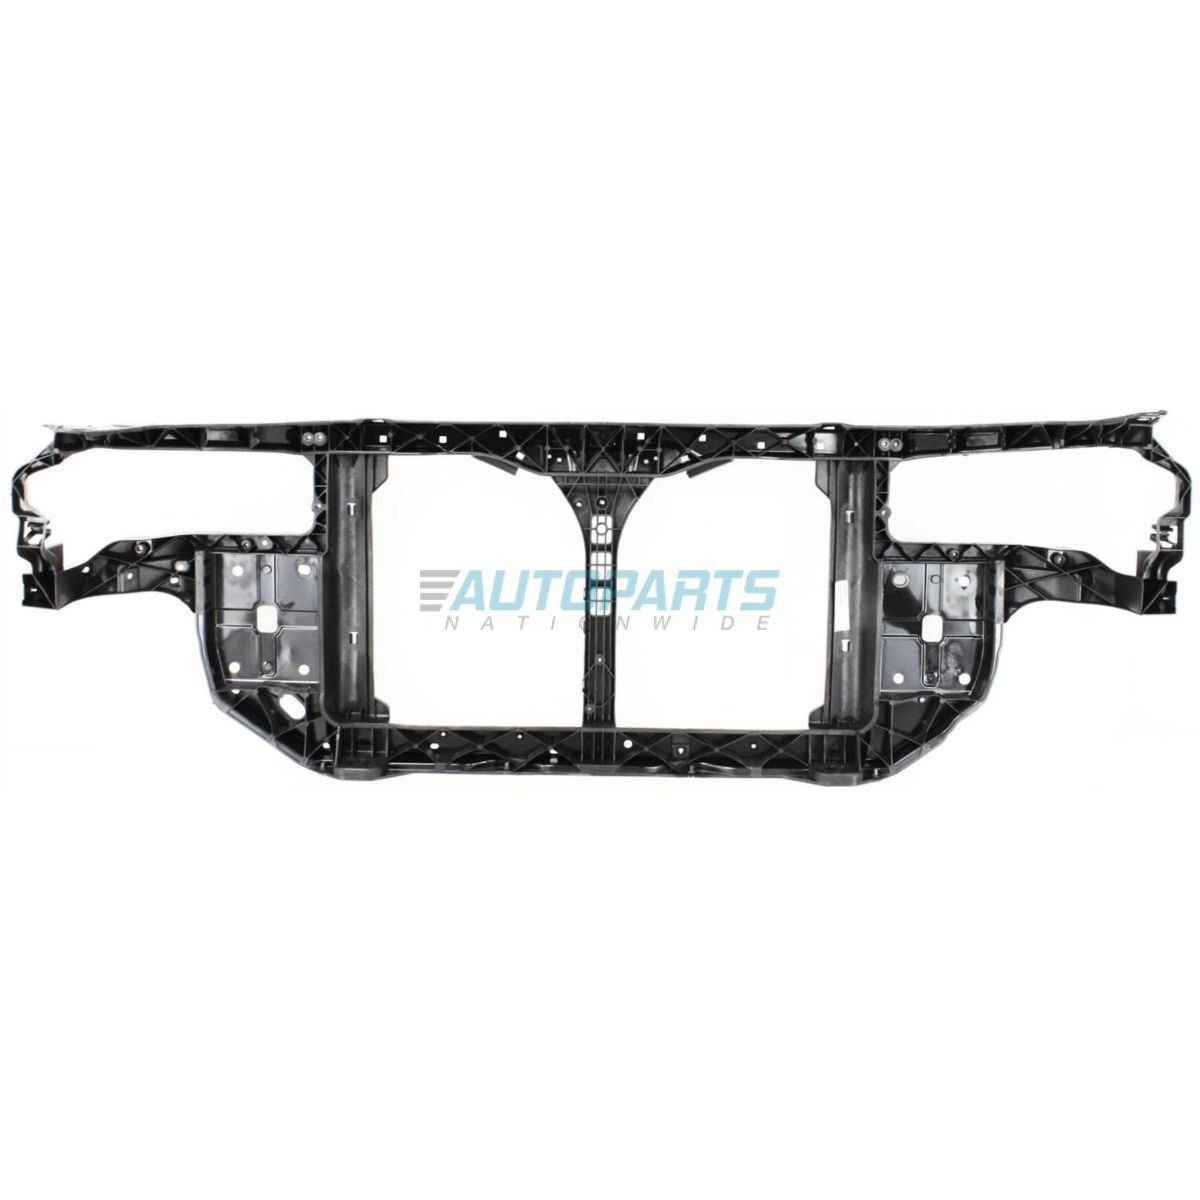 NEW RADIATOR SUPPORT ASSEMBLY FITS 2006-2008 HYUNDAI